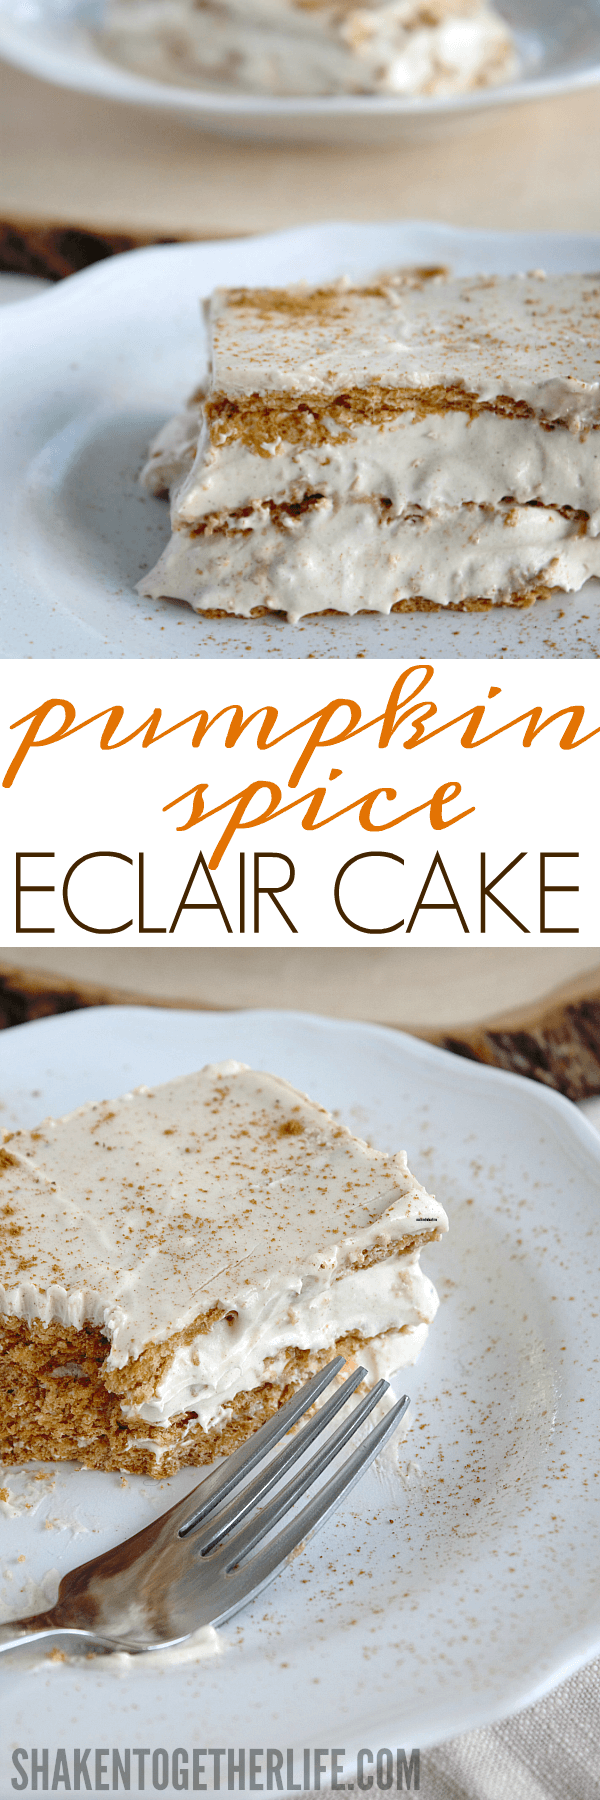 Pumpkin Spice Eclair Cake - cool and creamy and packed with BIG pumpkin spice flavor! This easy no bake dessert is going to be a family favorite!